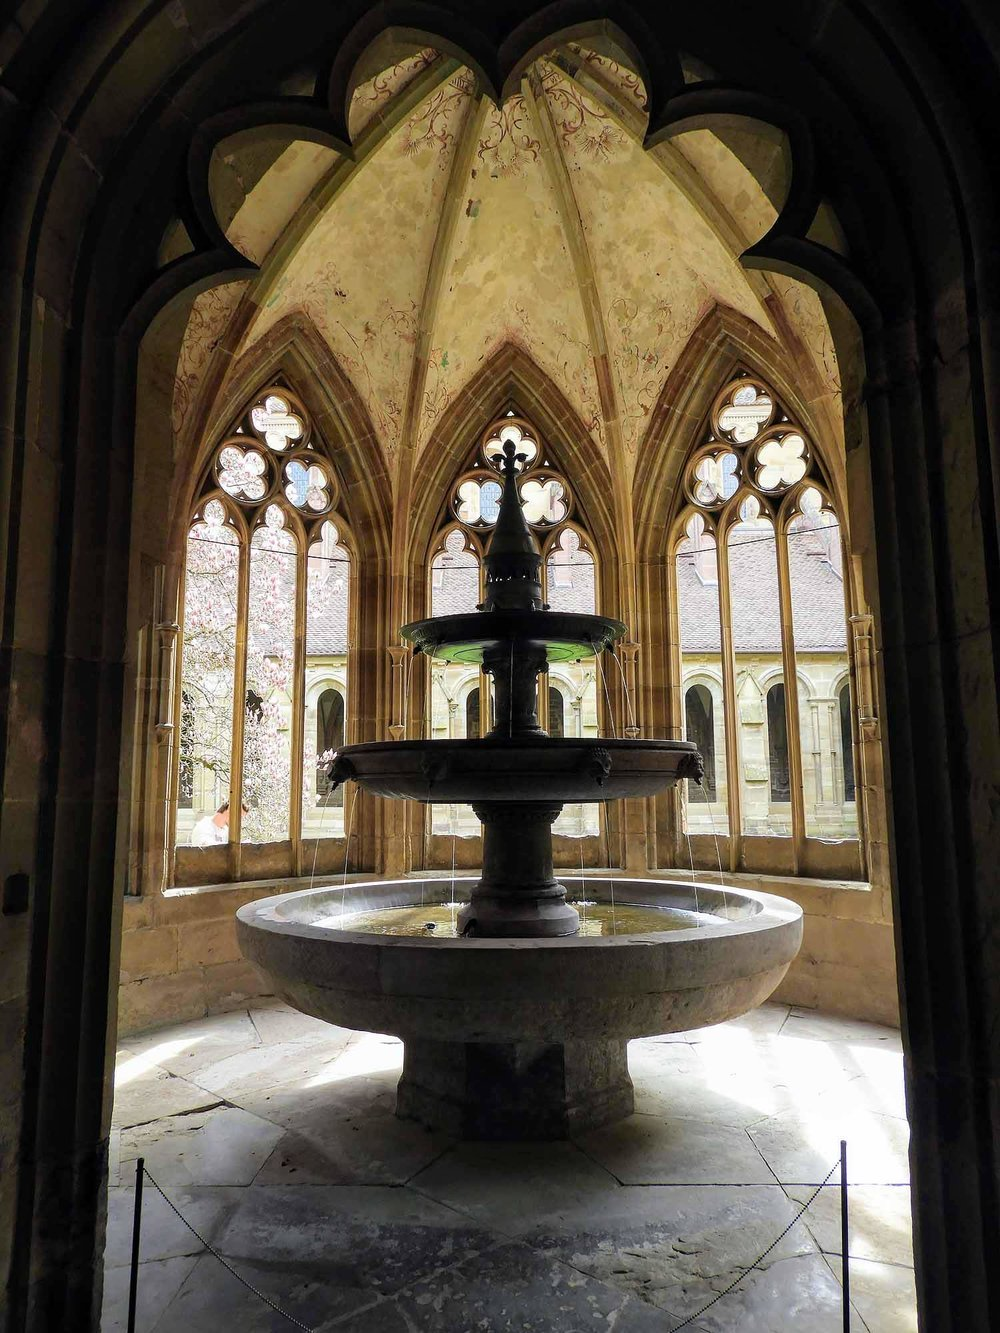 germany-kloster-maulbronn-fountain-water-health-monks.jpg